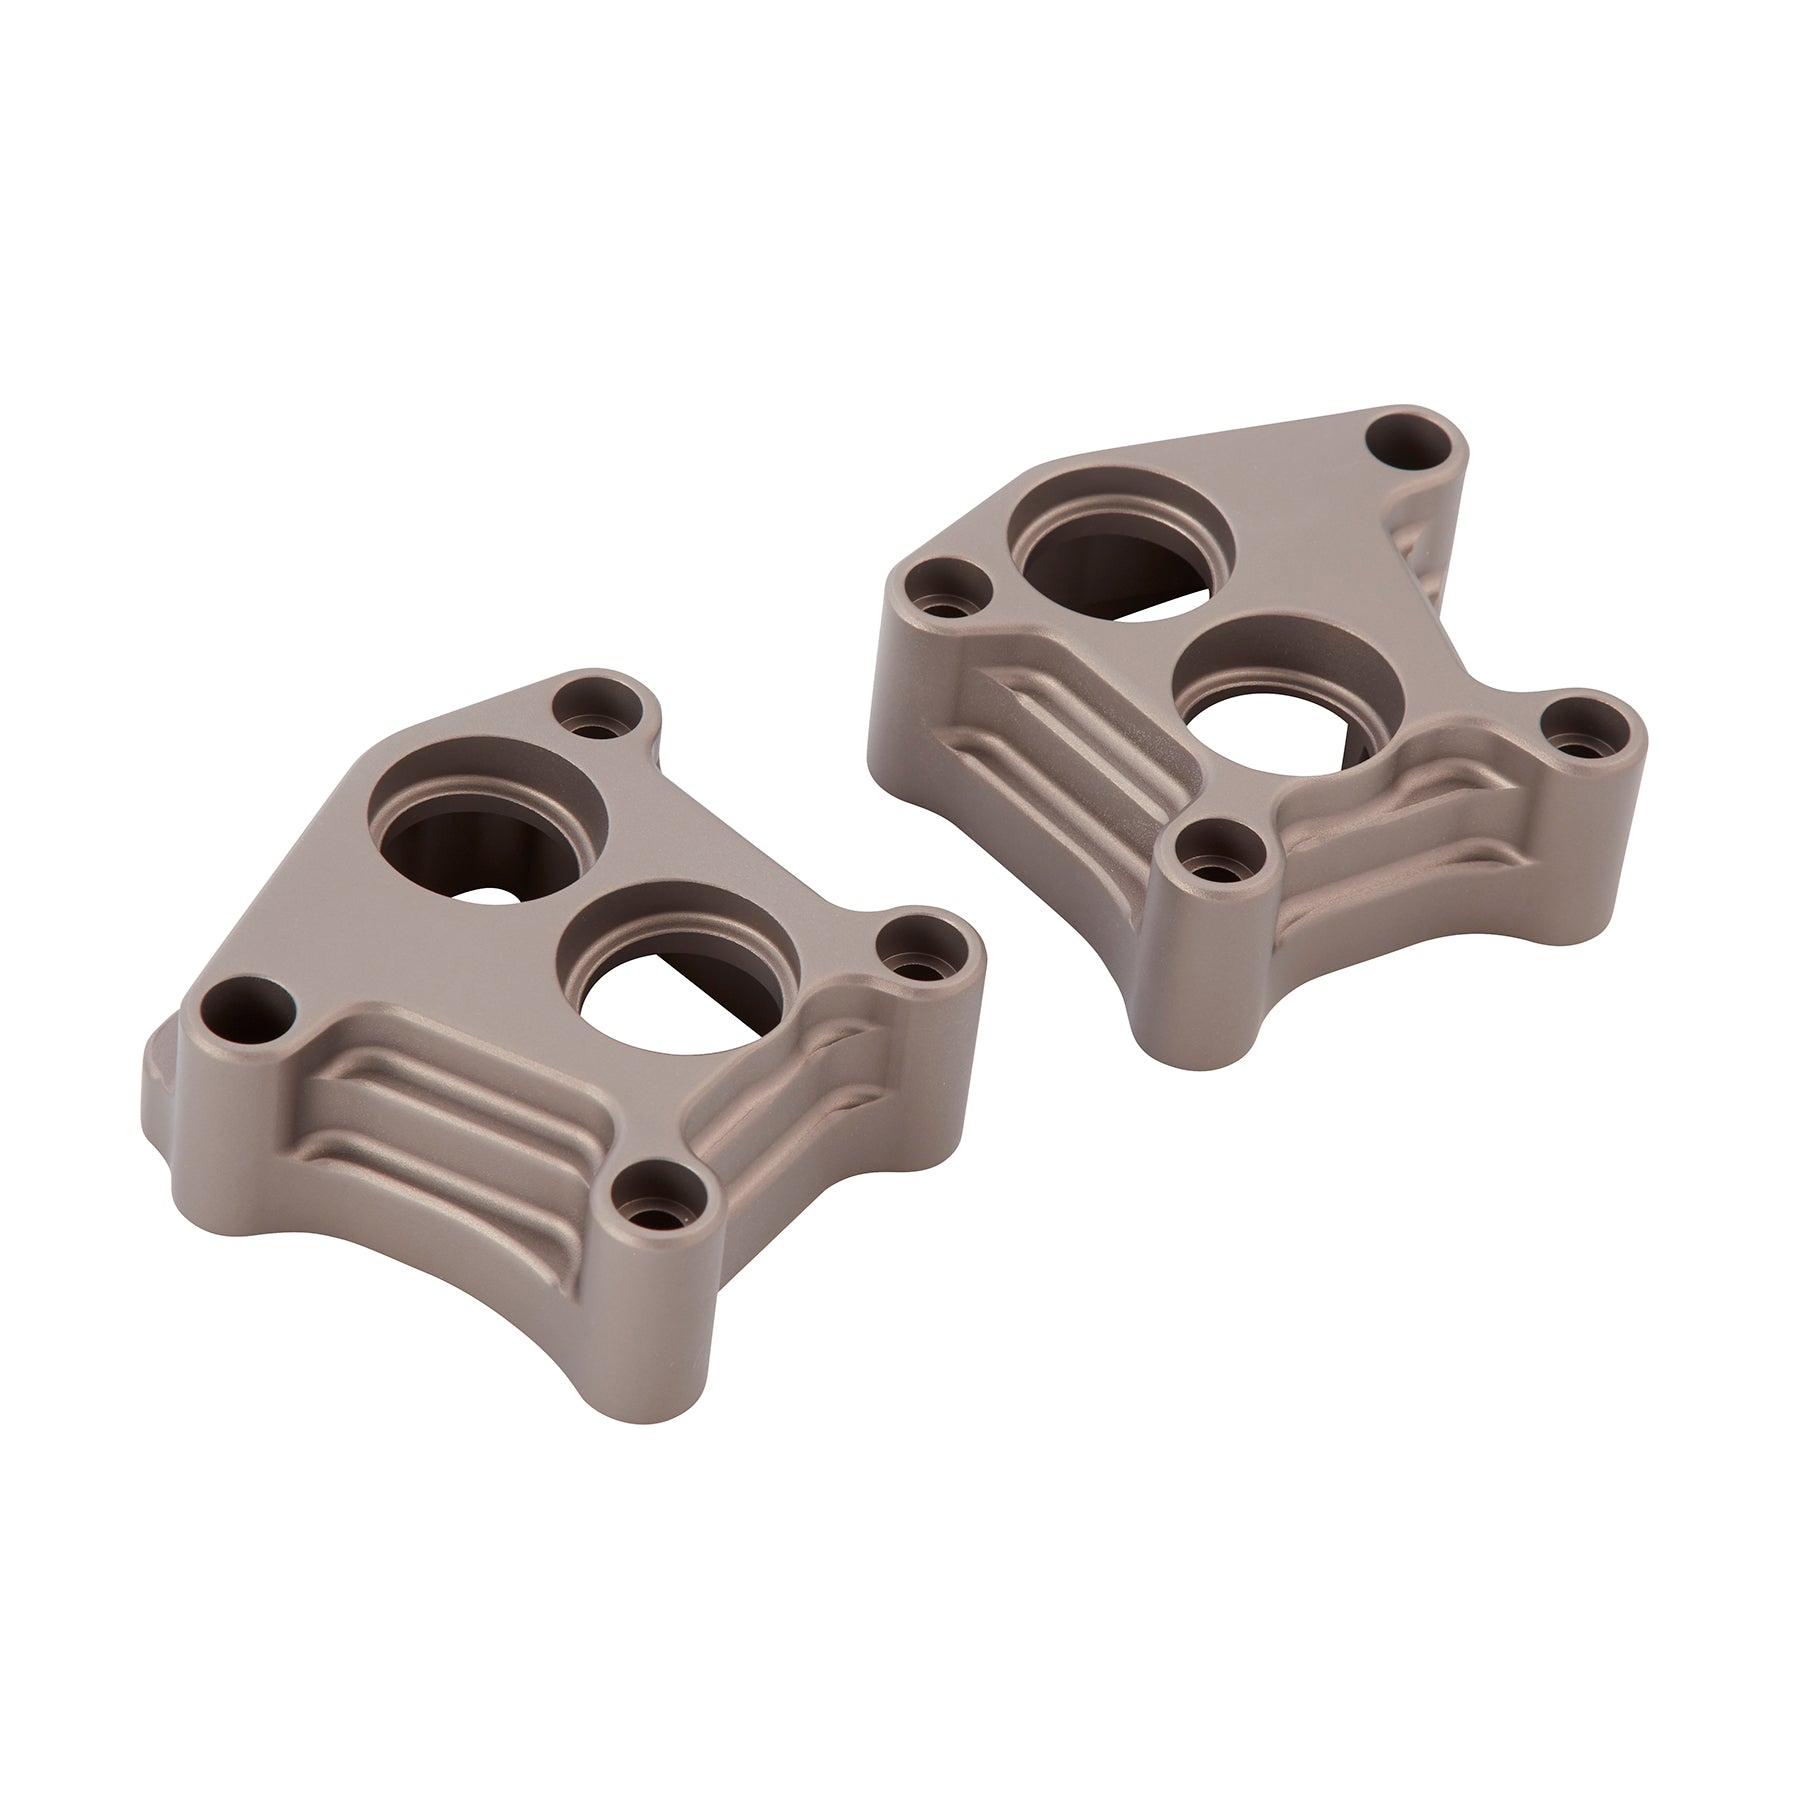 10-Gauge Lifter Blocks, Titanium